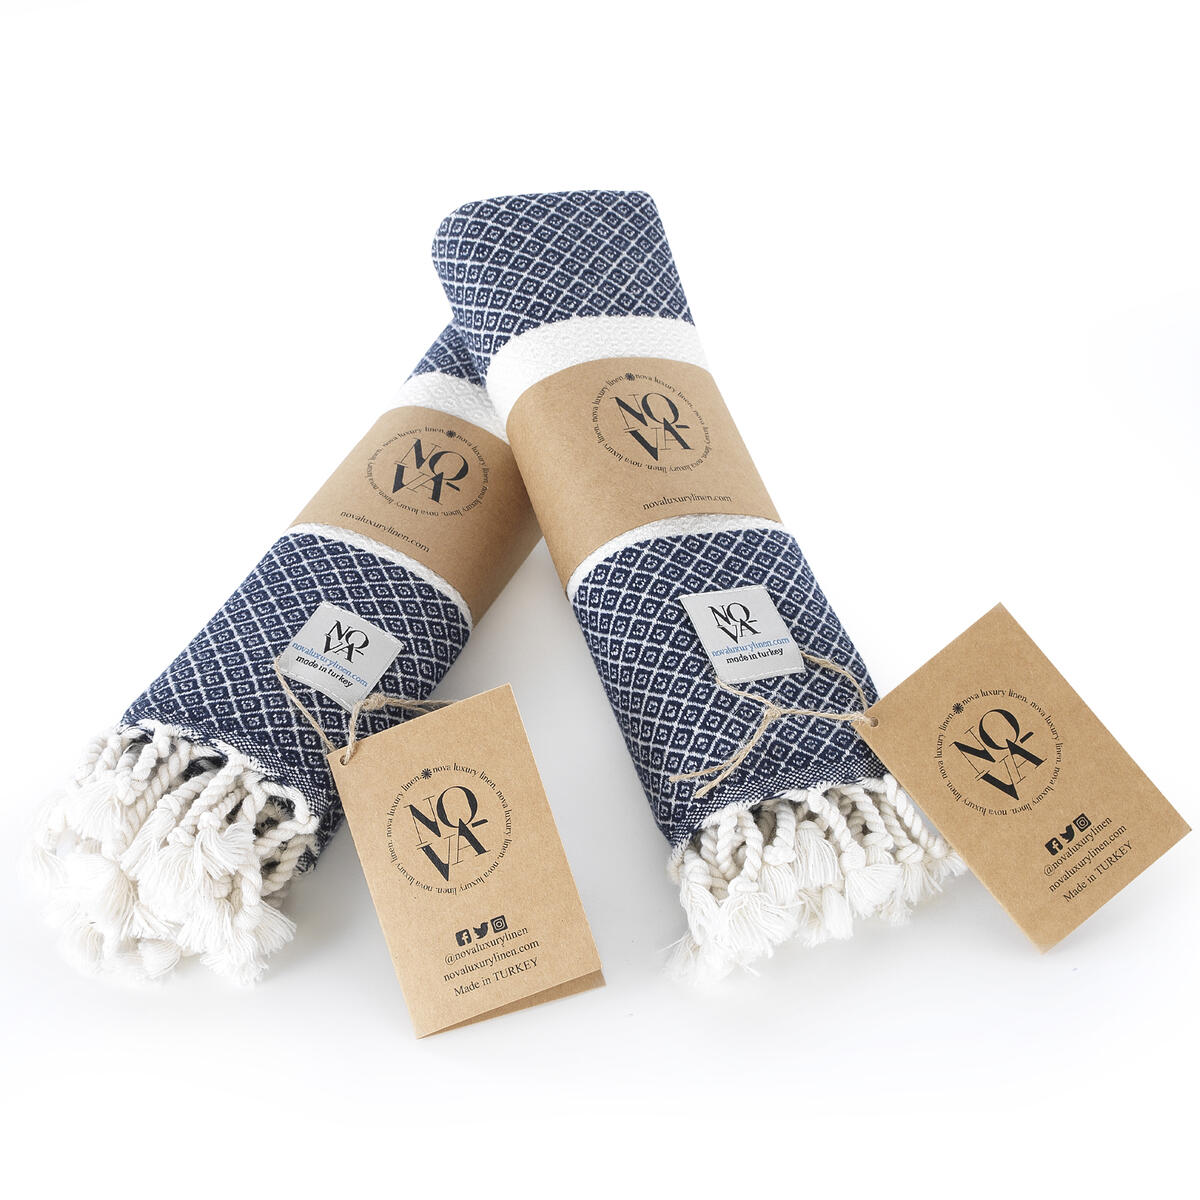 Nova Turkish Hand Towel - Set of 2 Turkish Hand Towels for Bathroom, Gym, Kitchen, SPA - Extra Soft Cotton Towels for Hands and Face - 16 x 40-inch Decorative Peshtemal - Tassel Hand Towels